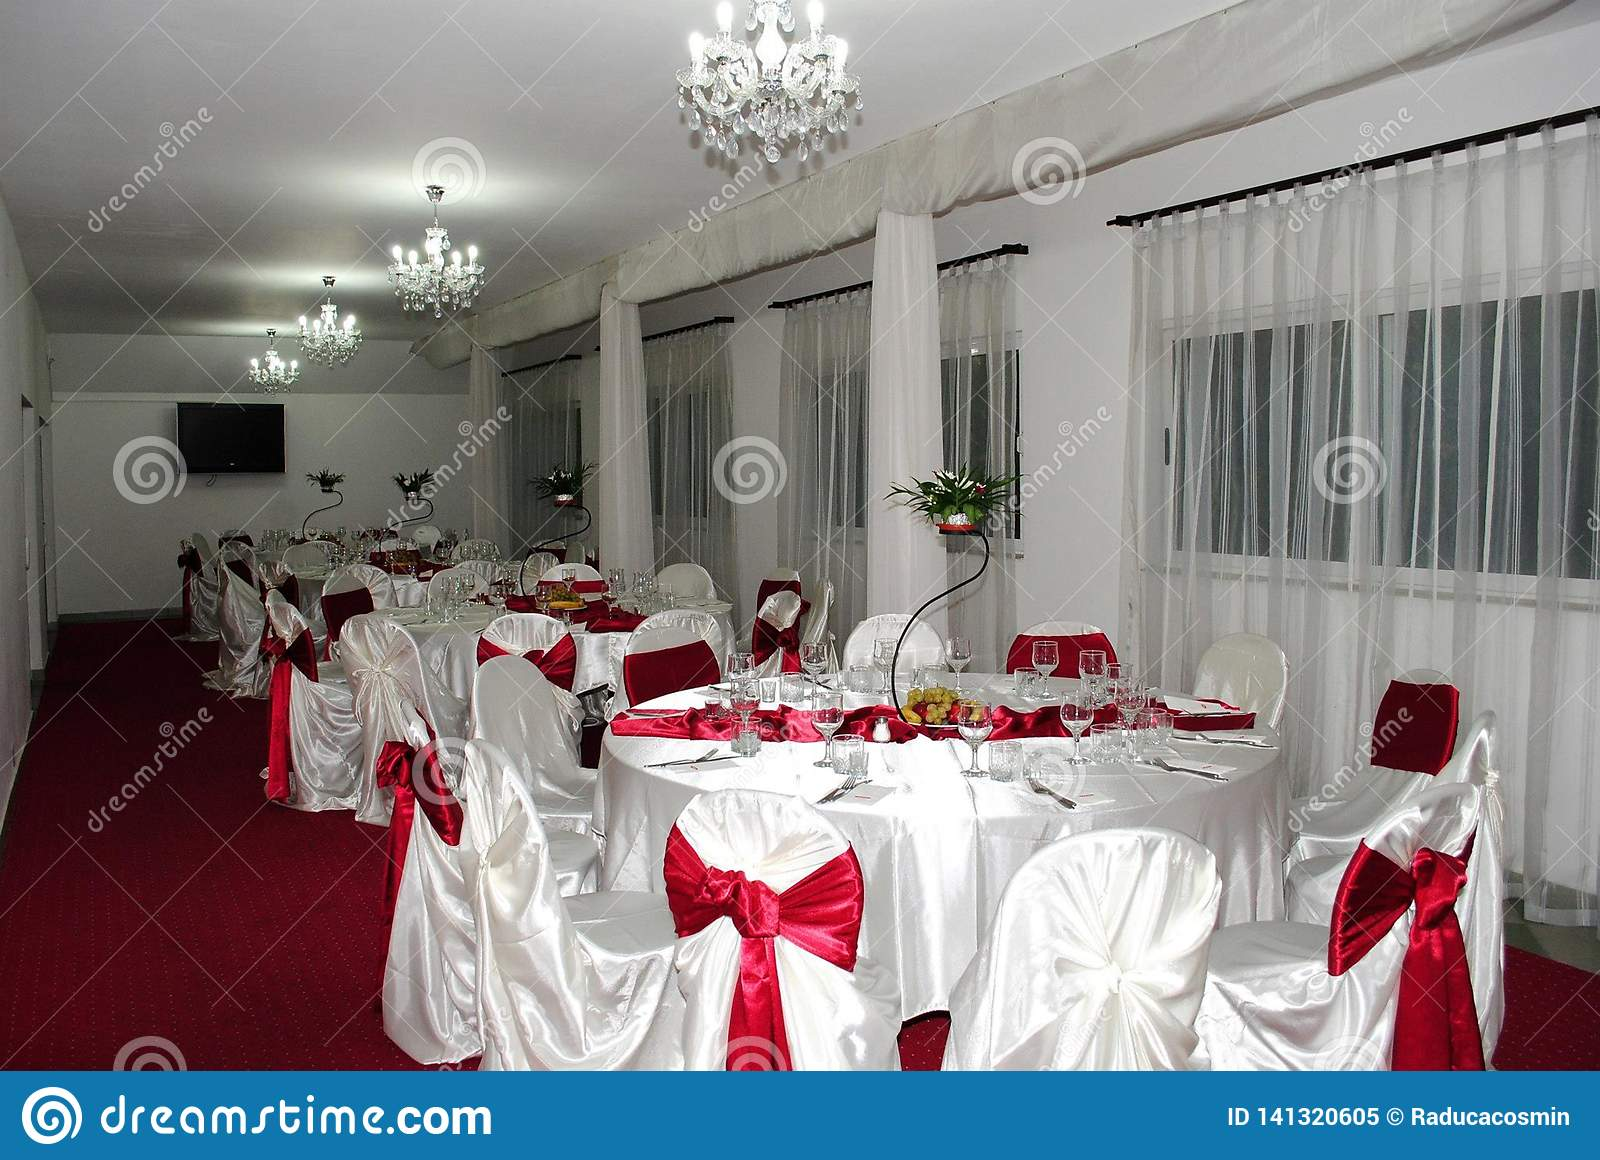 Wedding arrangement with beautiful chandelier and white and red chairs